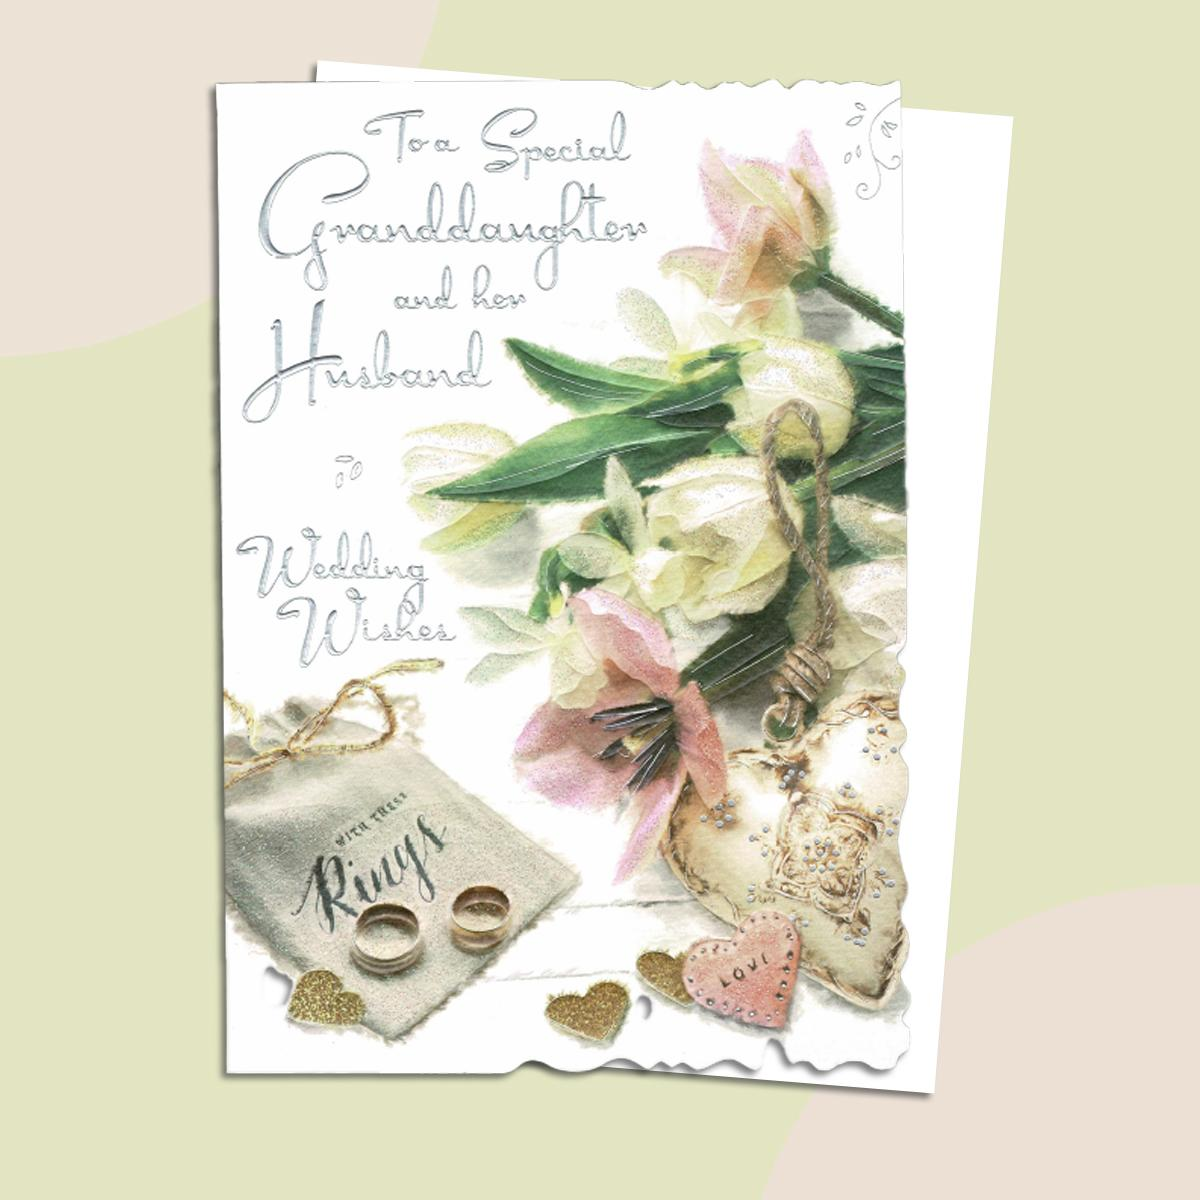 Granddaughter And Husband Wedding Card Alongside Its White Envelope